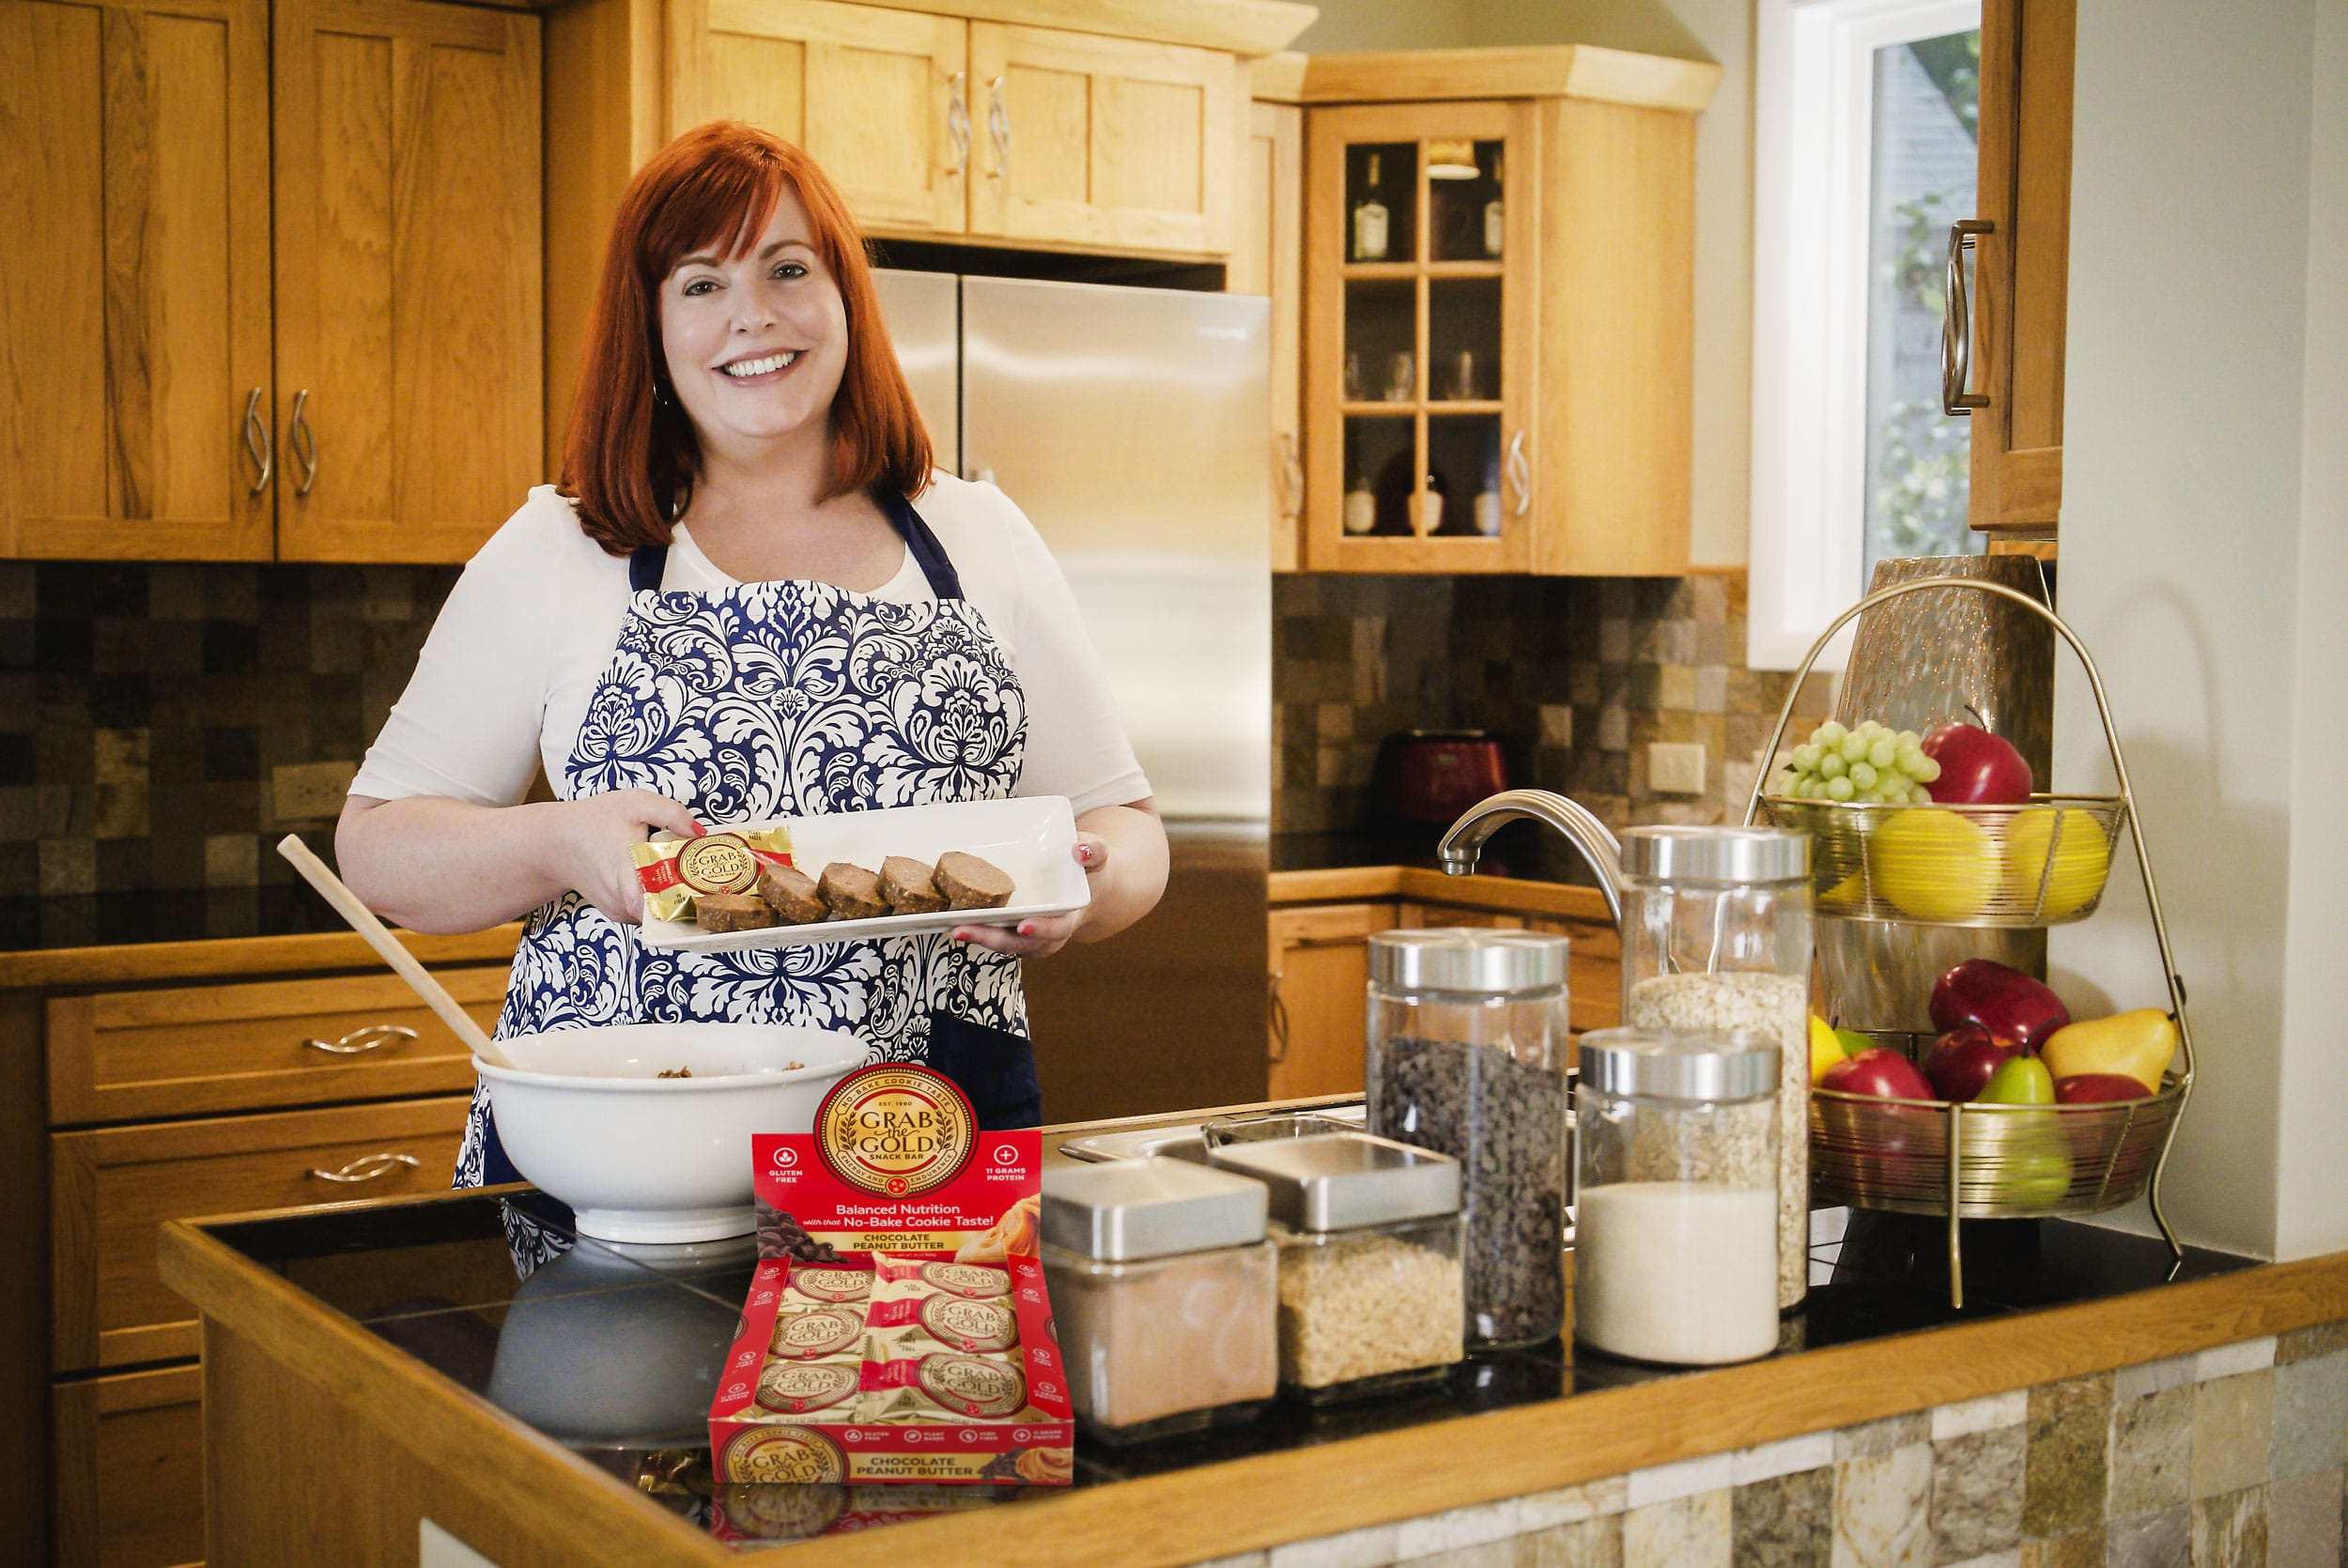 Grab The Gold Danielle Ontiveros In The Kitchen